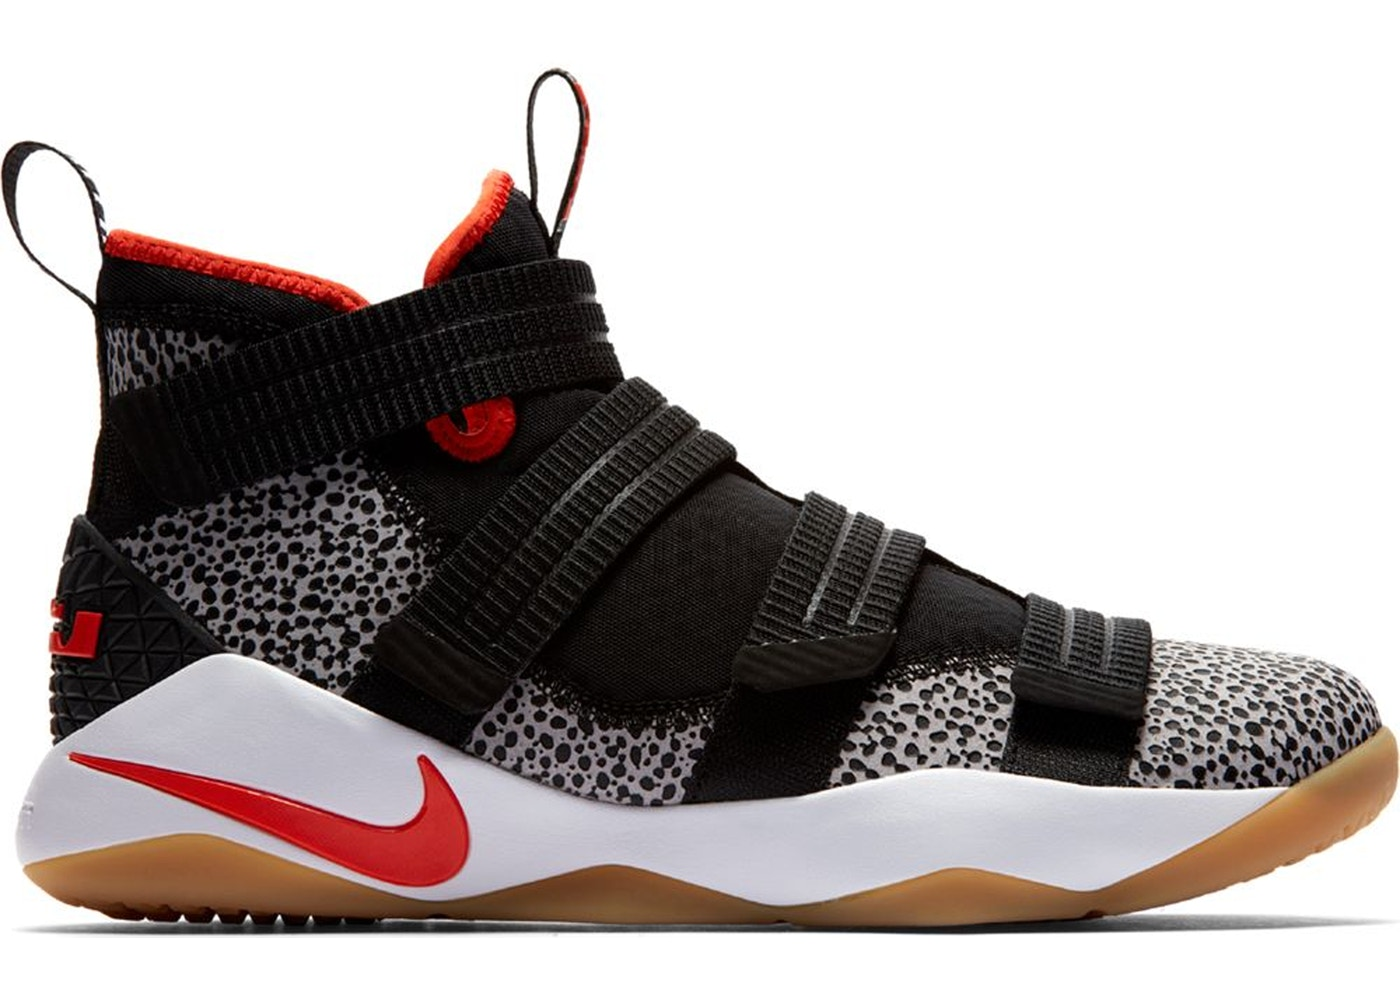 buy online 9bbd0 be44b LeBron Zoom Soldier 11 Safari